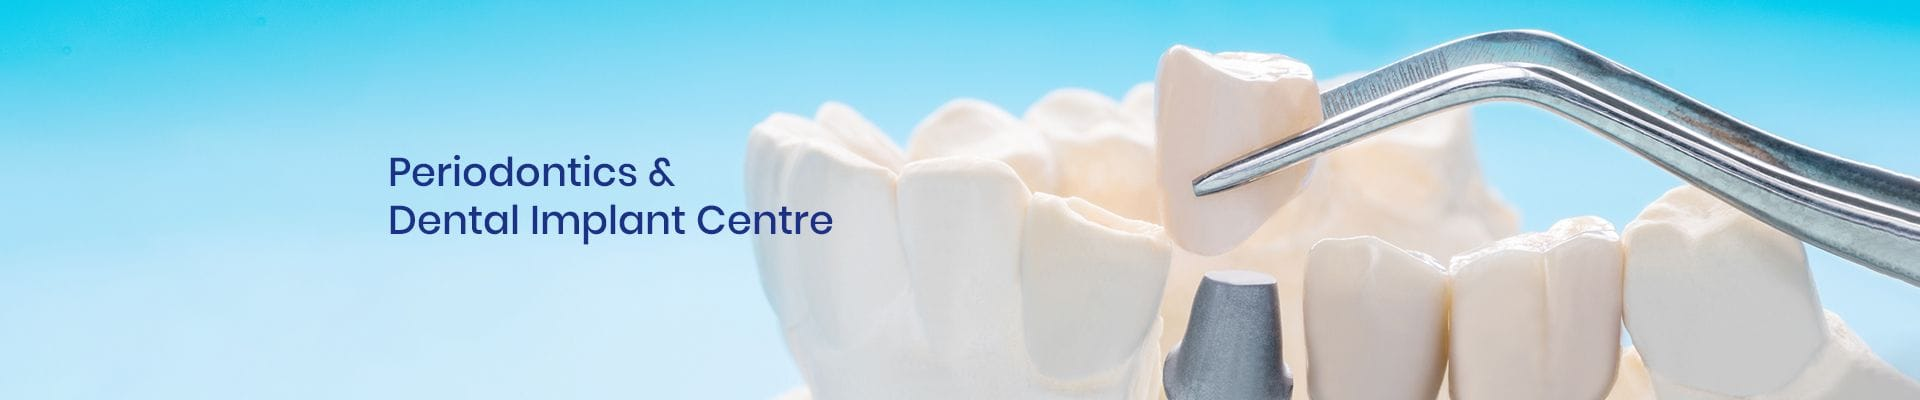 Periodontics & Dental Implant Centre | Periodontics | Indooroopilly, Toowooomba